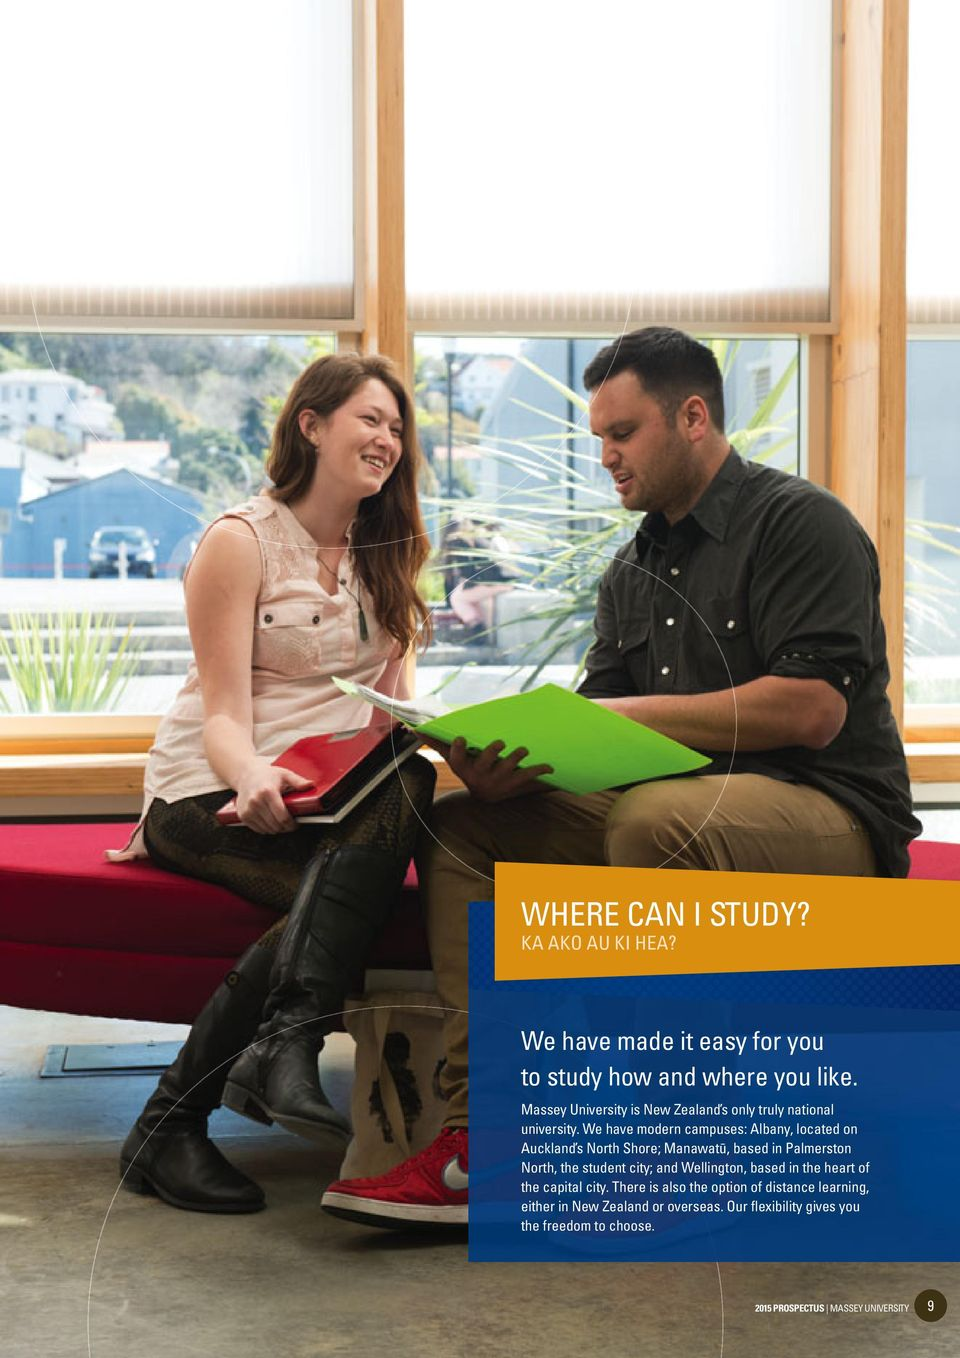 We have modern campuses: Albany, located on Auckland s North Shore; Manawatū, based in Palmerston North, the student city; and